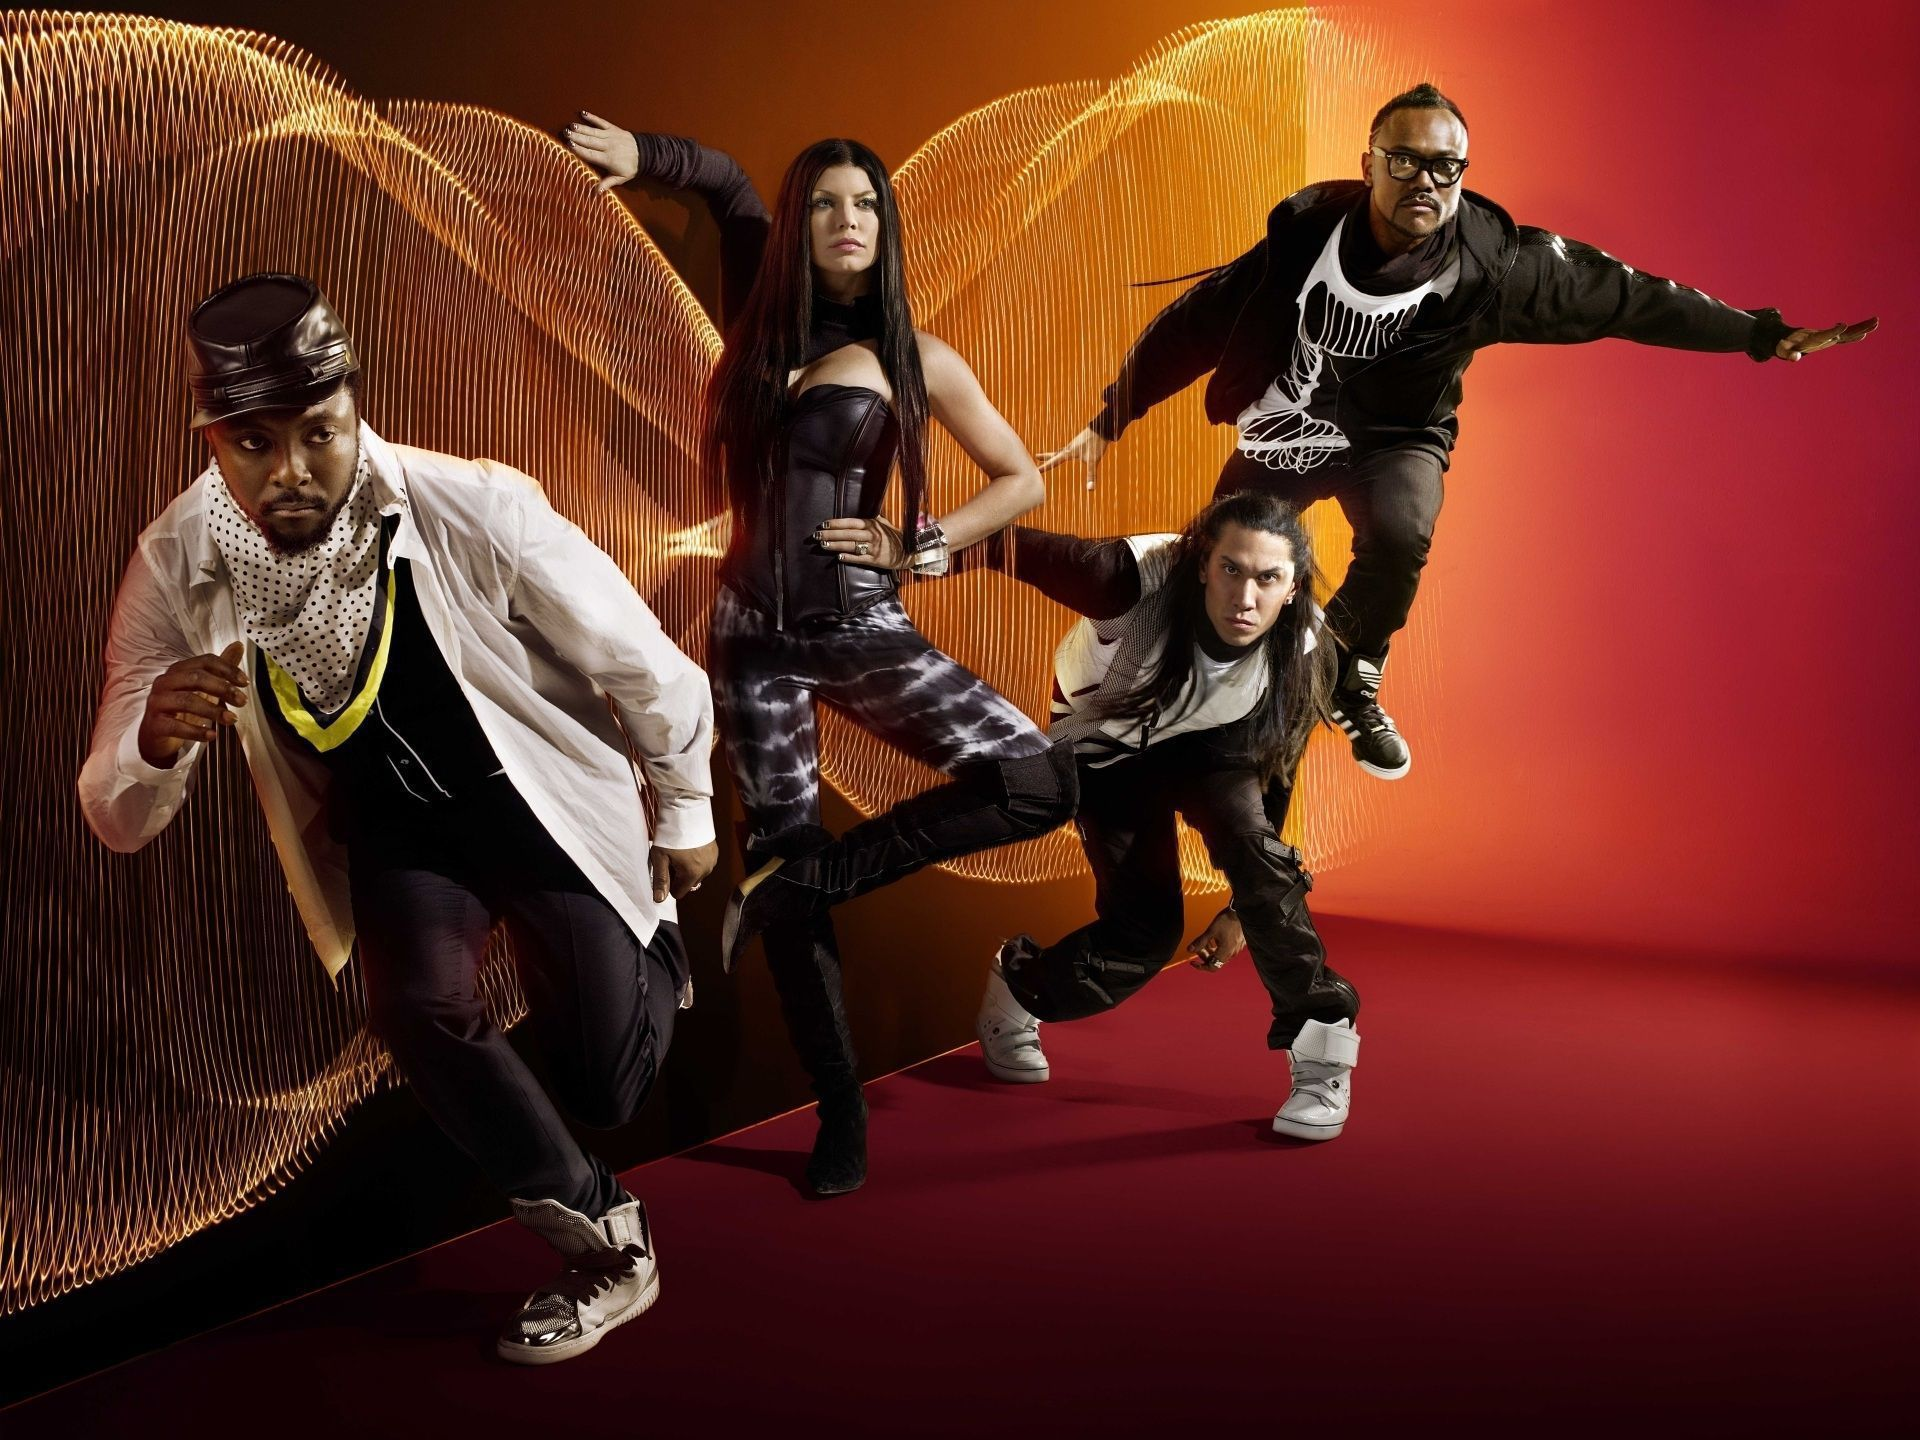 Black Eyed Peas Wallpaper Pack